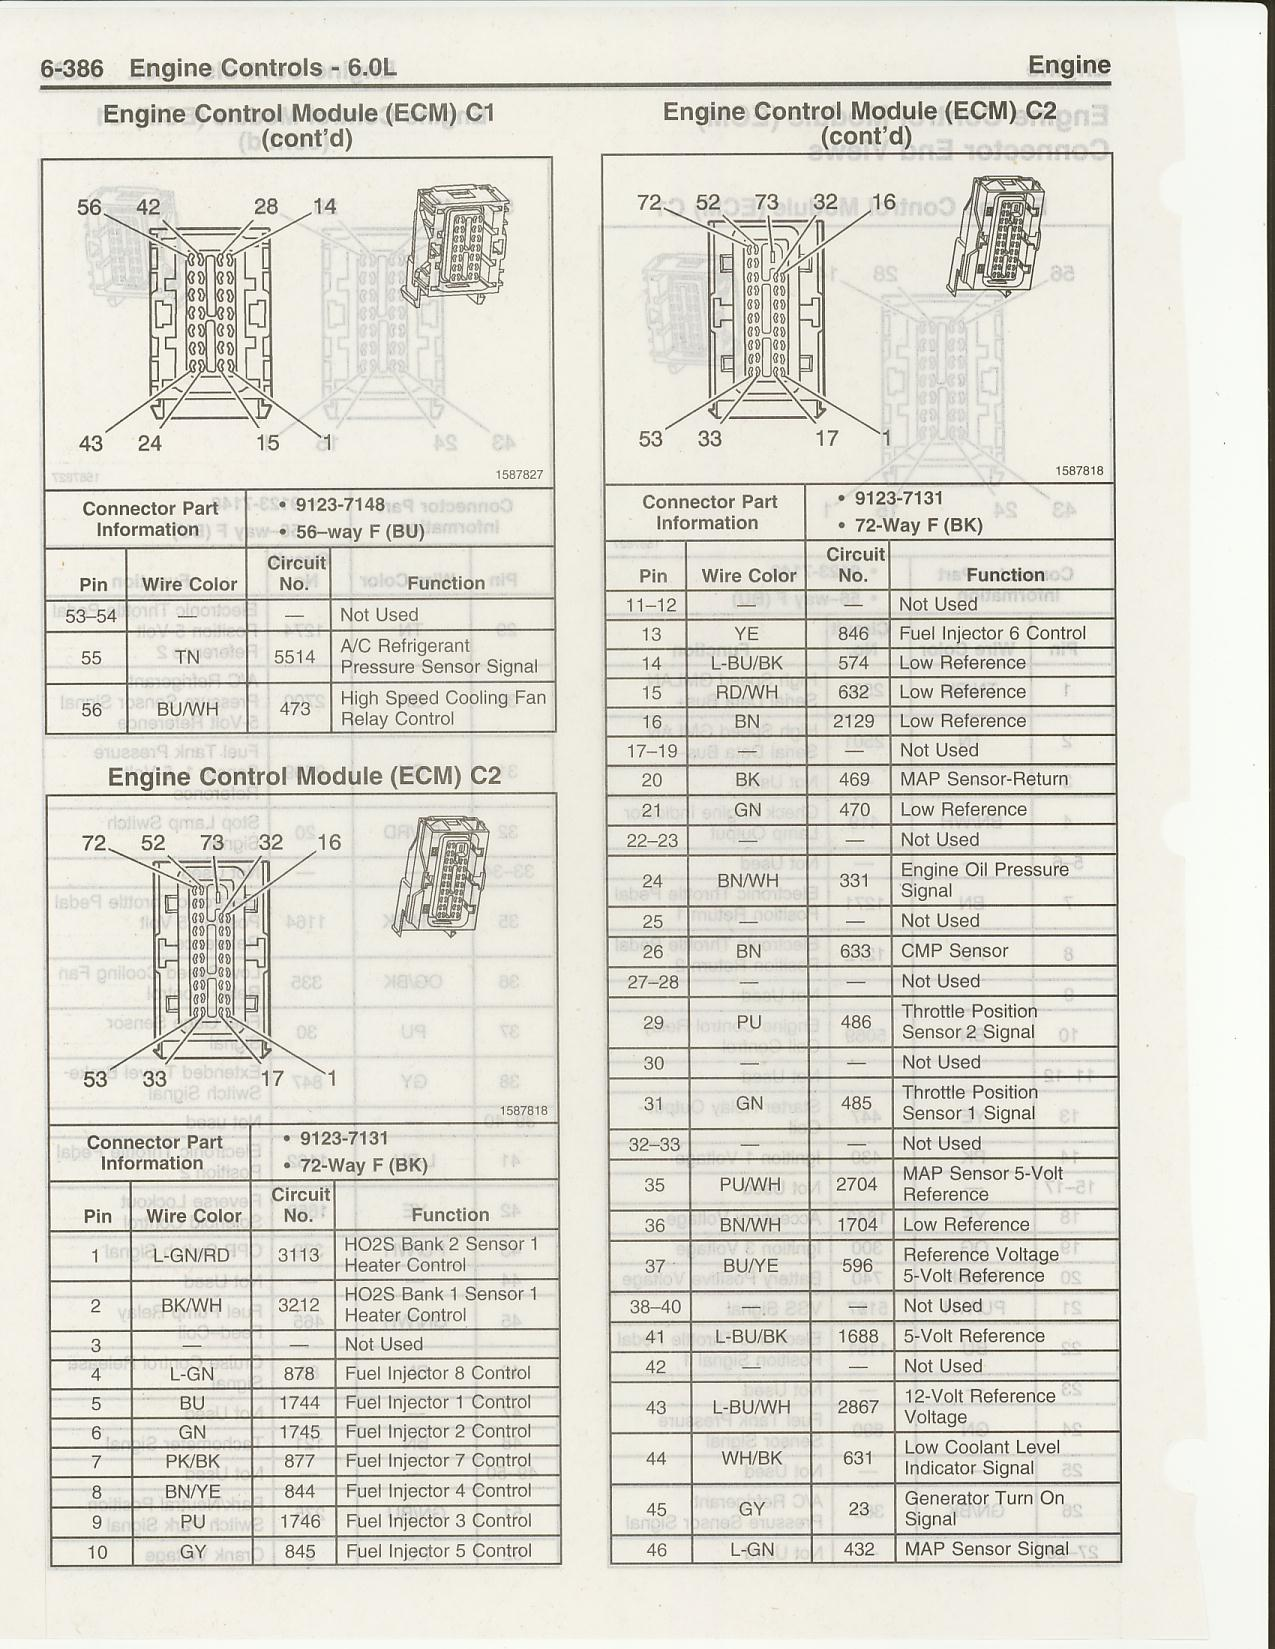 Enginecontrols on 2000 Gmc Yukon Throttle Body Diagram